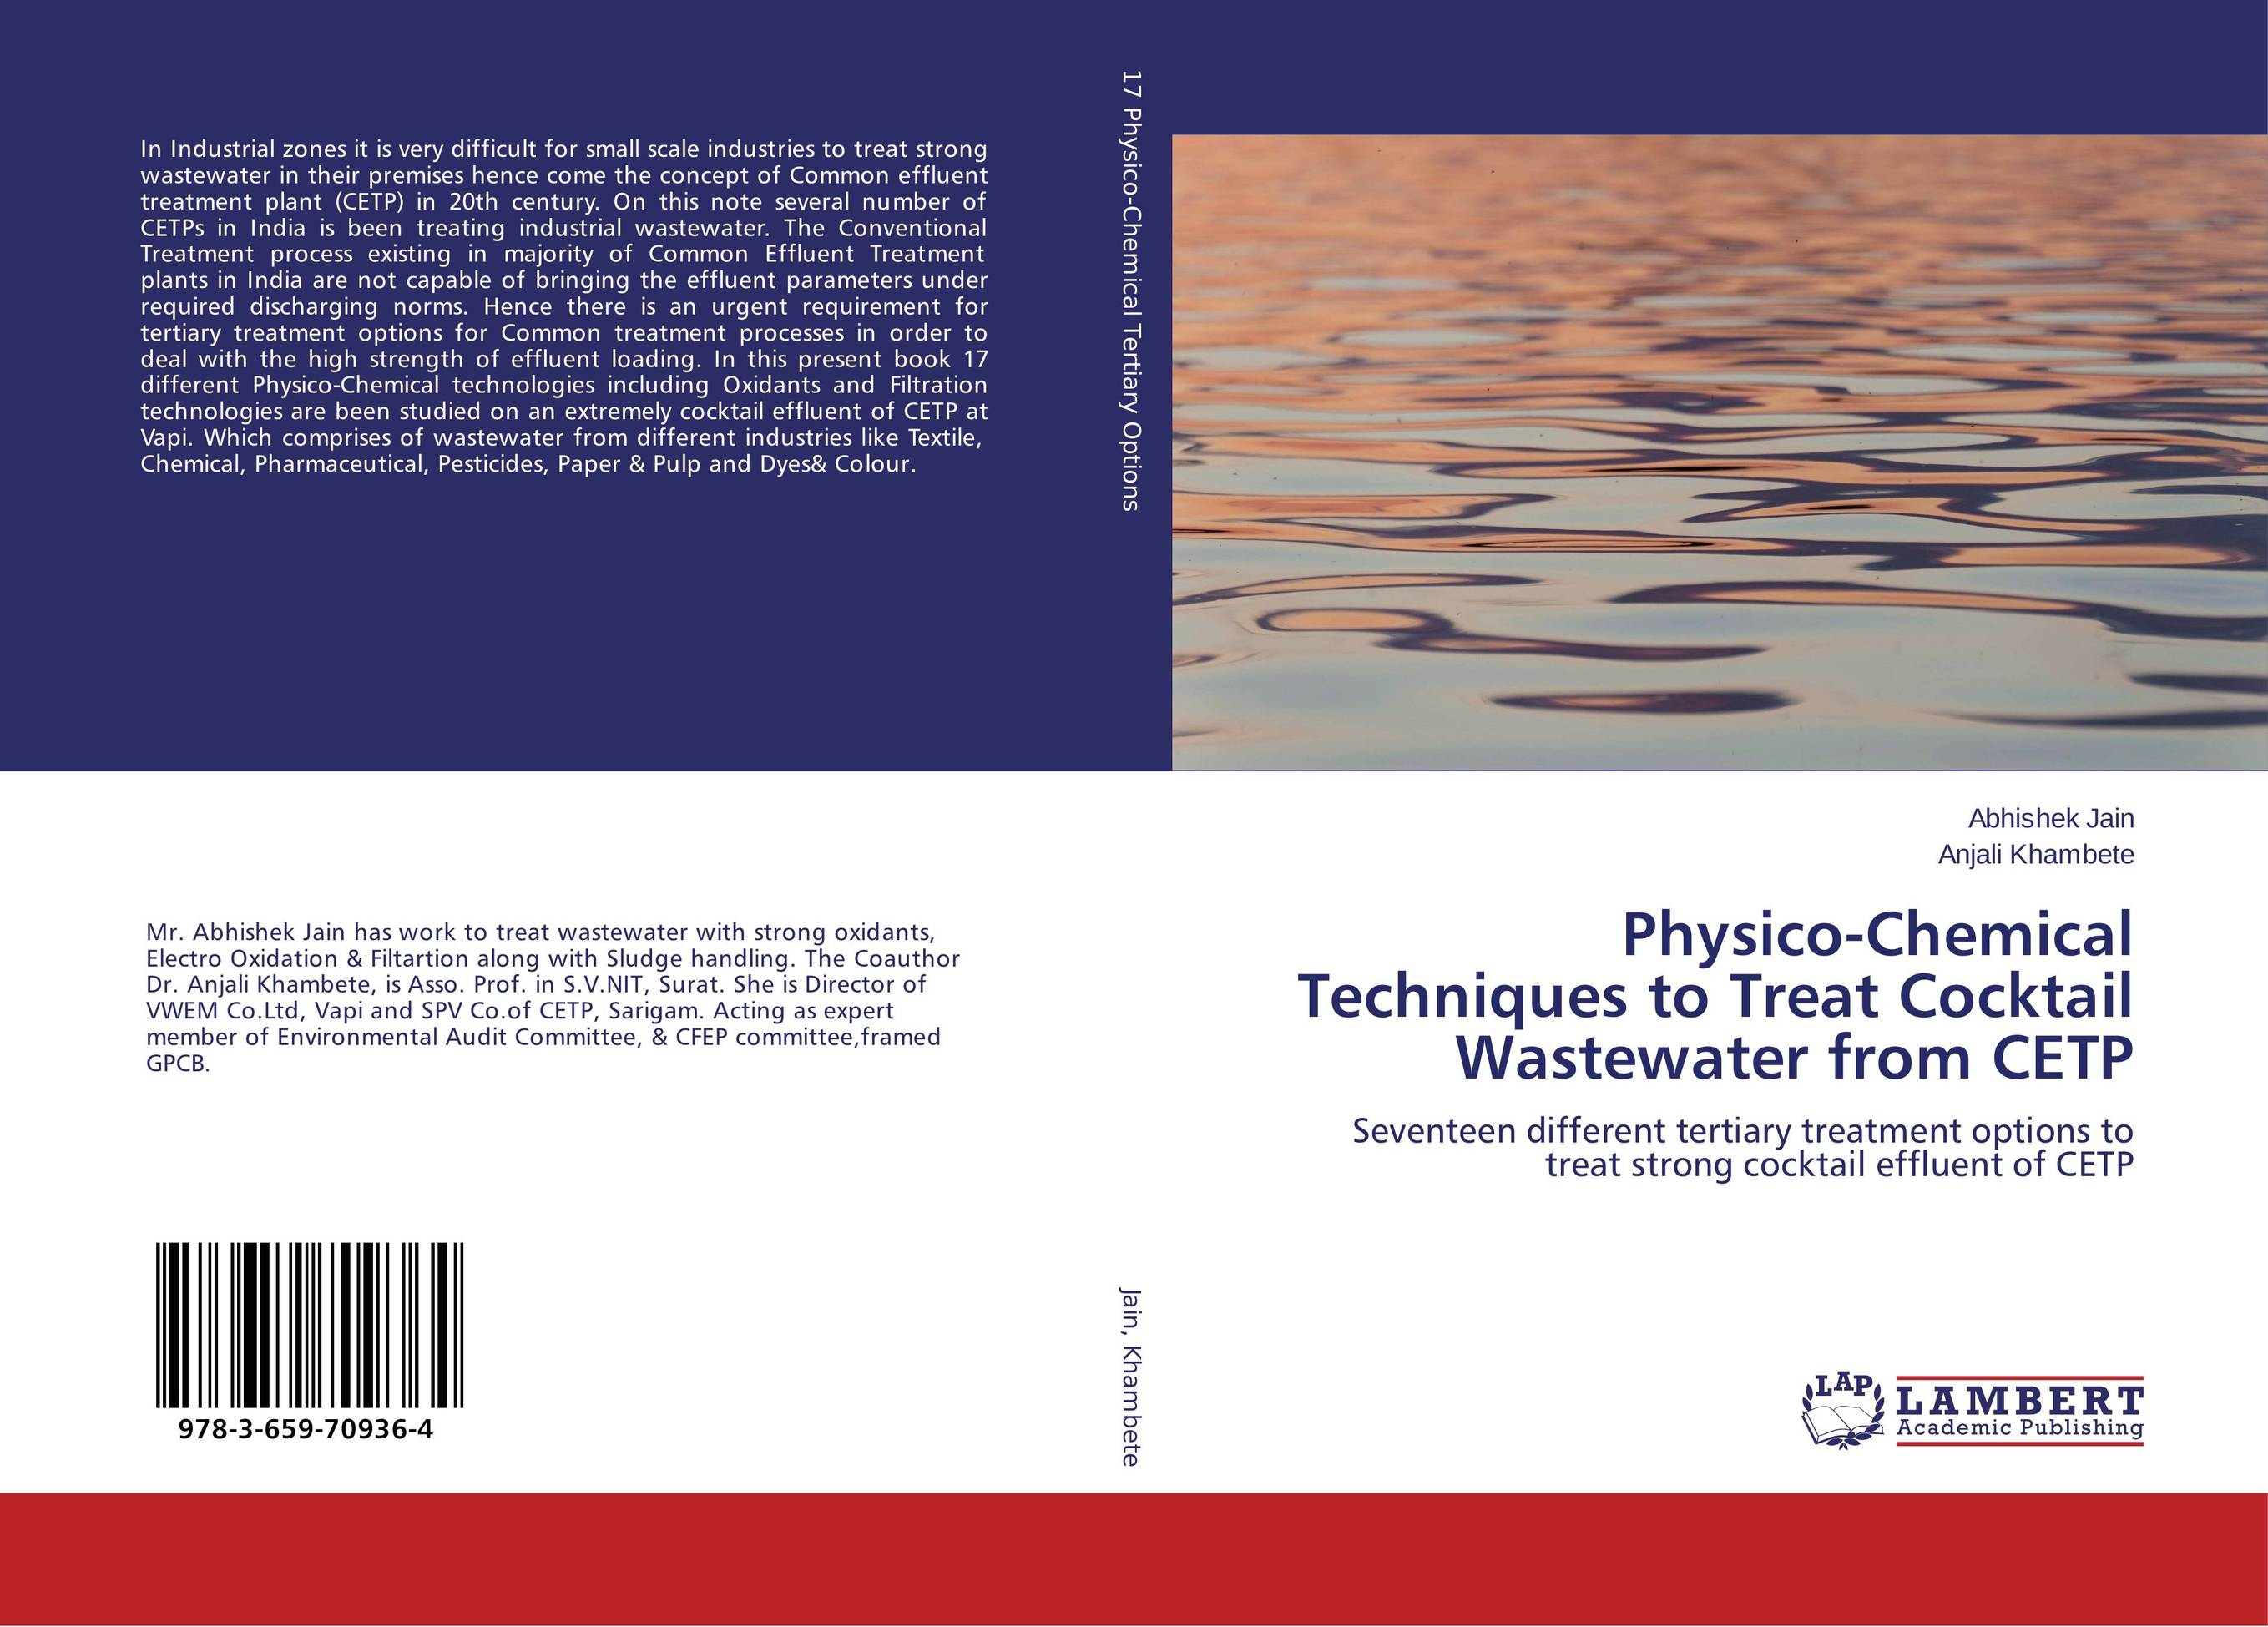 Physico-Chemical Techniques to Treat Cocktail Wastewater from CETP analysis of pharmaceuticals in wastewater and their photodegradation